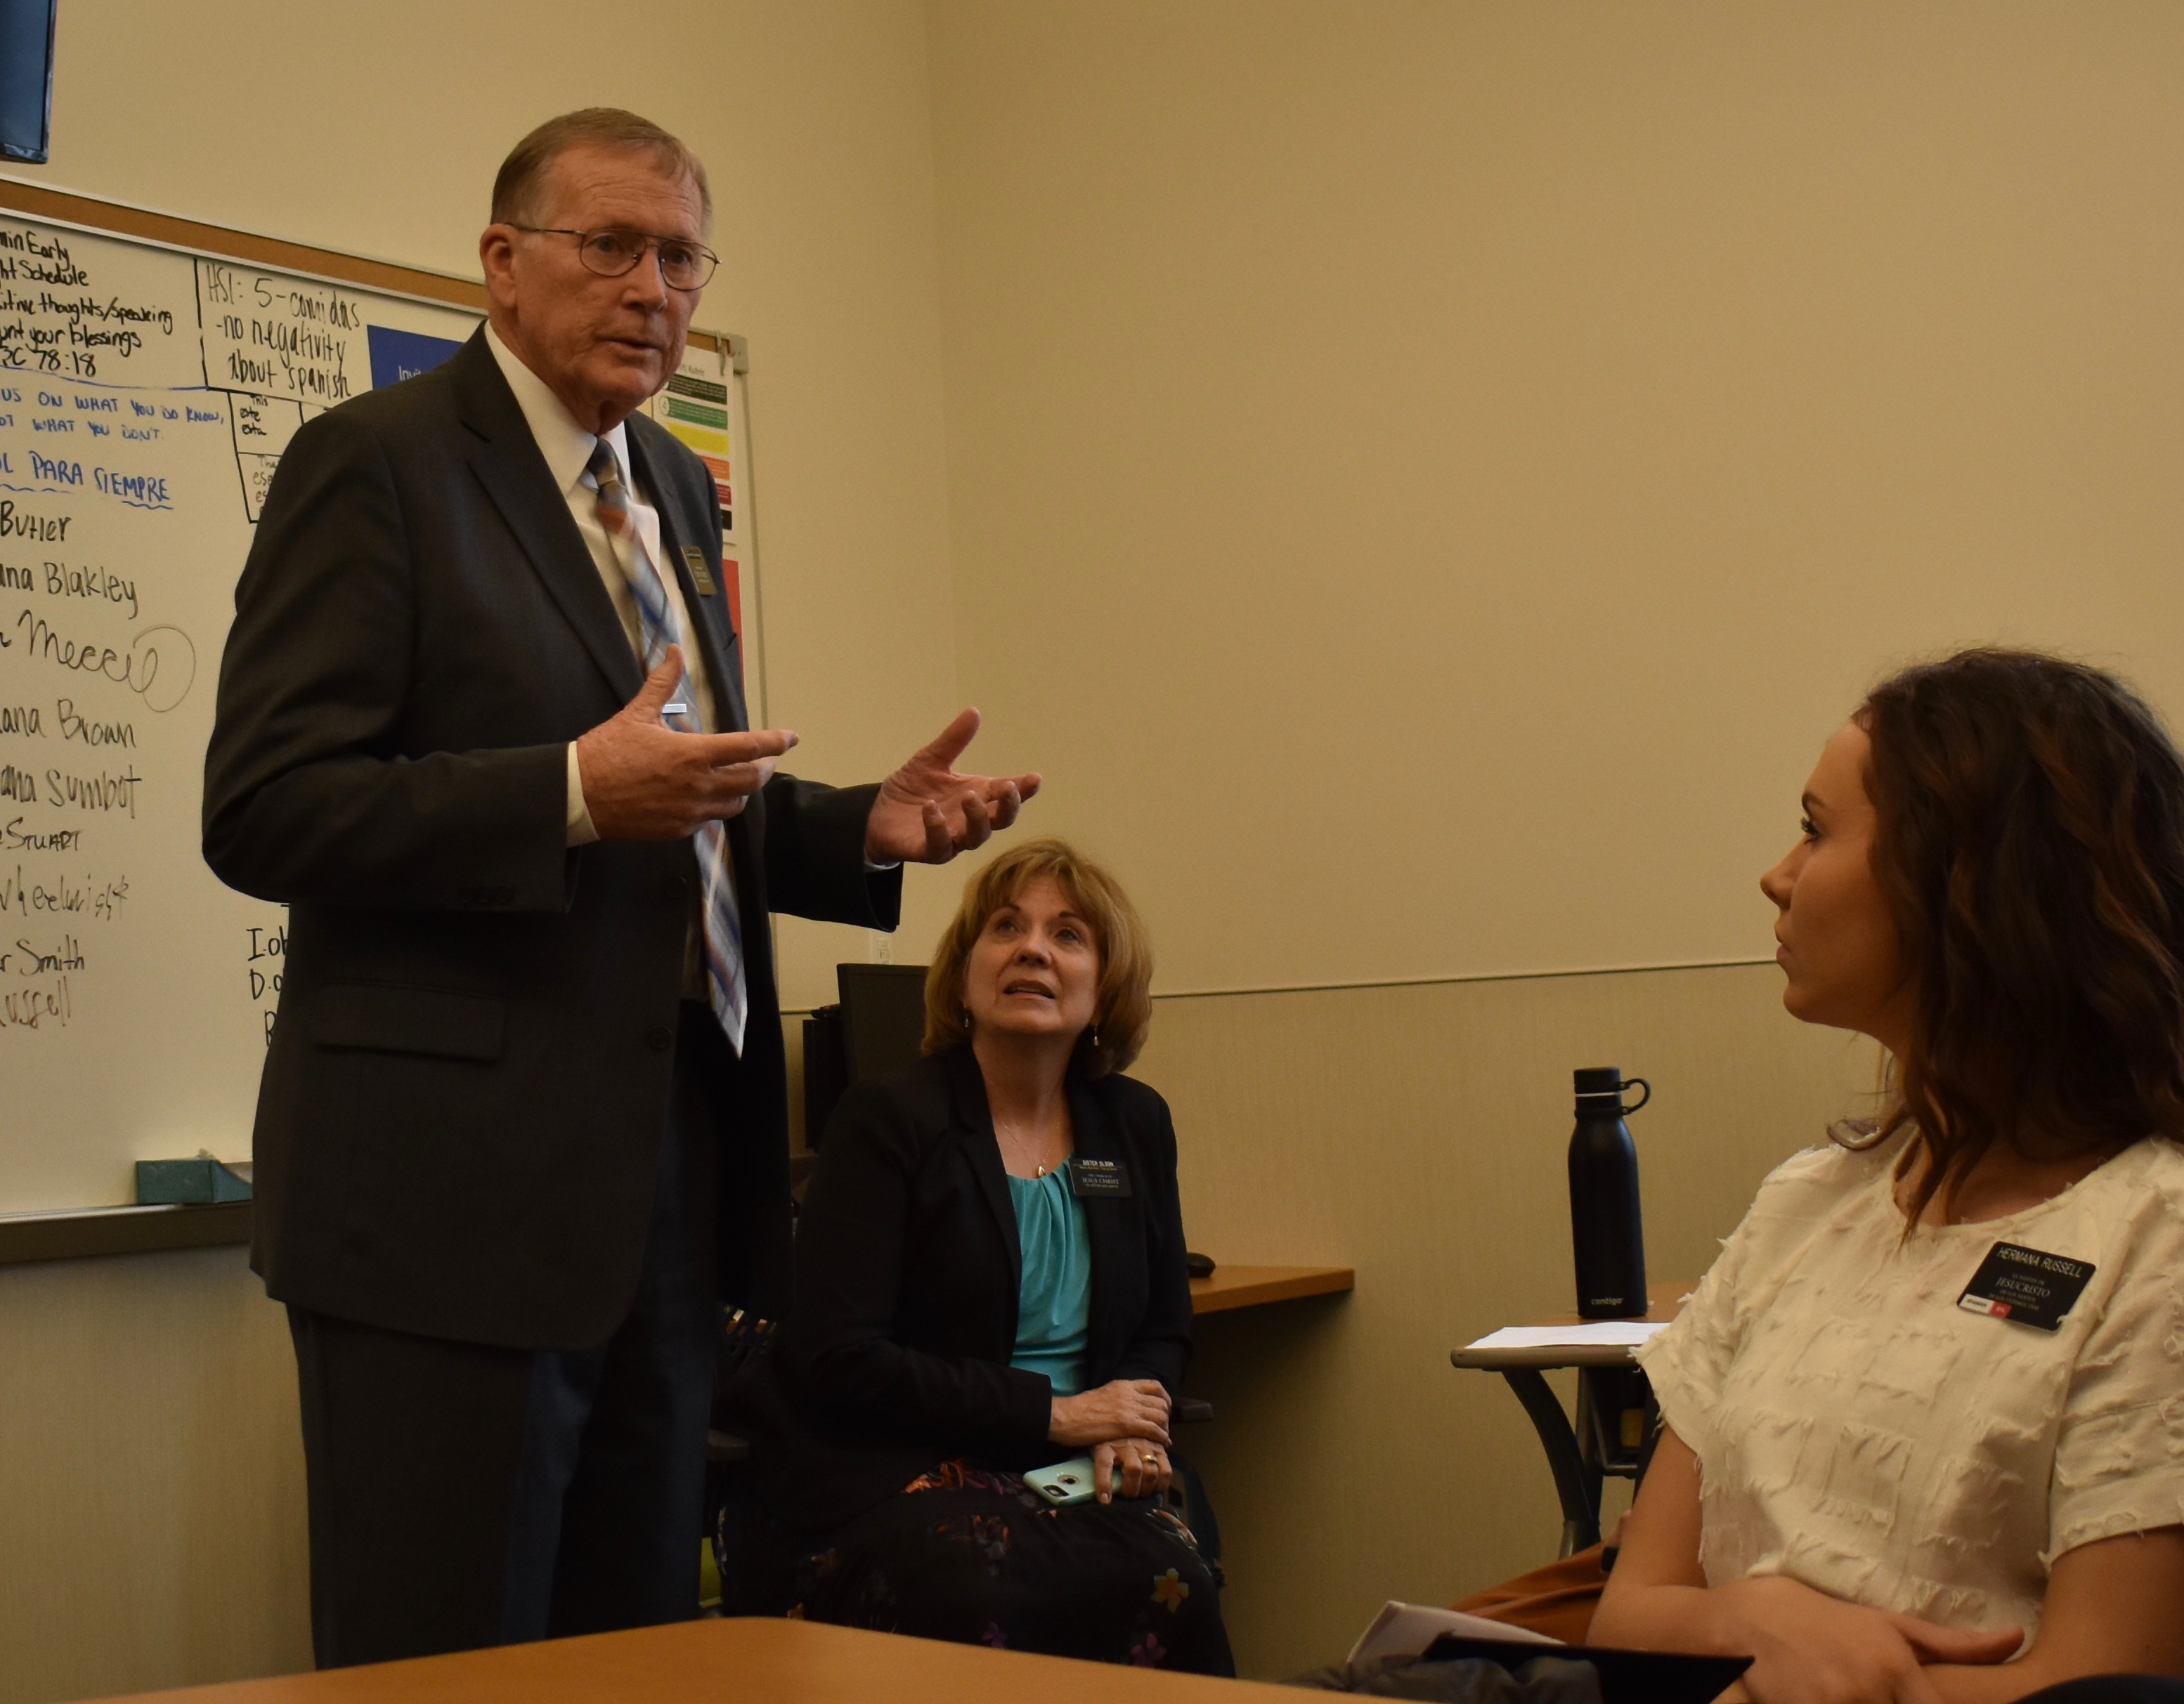 President Timothy M. Olson of the México Missionary Training Center, joined by his wife Sister Rose Ann Olson, speaks to a district of missionaries at the Provo MTC on Wednesday, Jan. 16, 2019. The Olsons were participating in the 2019 MTC Leadership Seminar, conducted Jan. 14-17 in Provo and Salt Lake City, Utah.